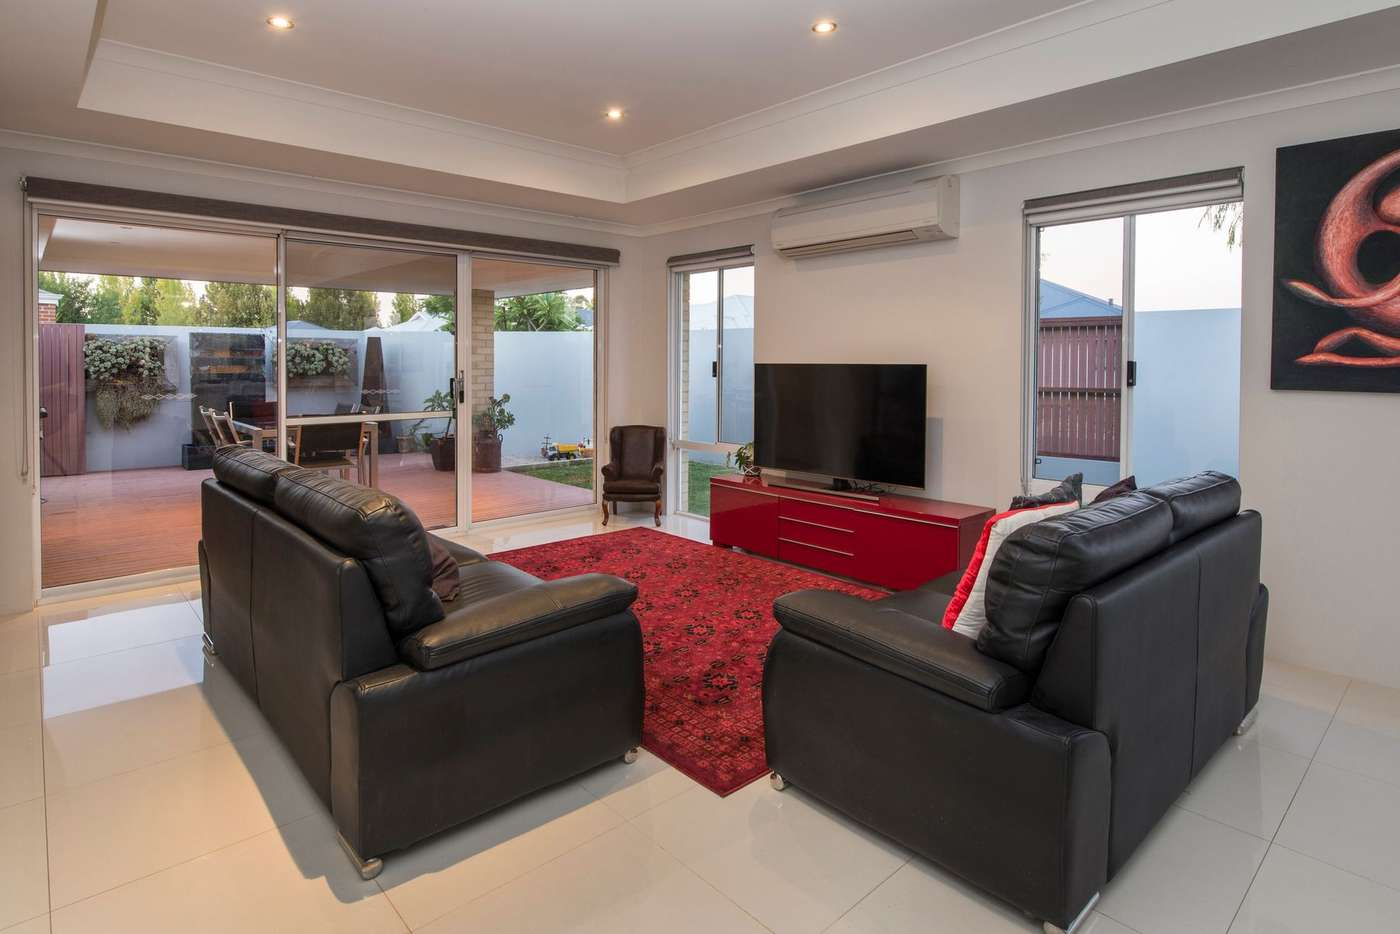 Seventh view of Homely house listing, 29 Oaks Drive, Vasse WA 6280